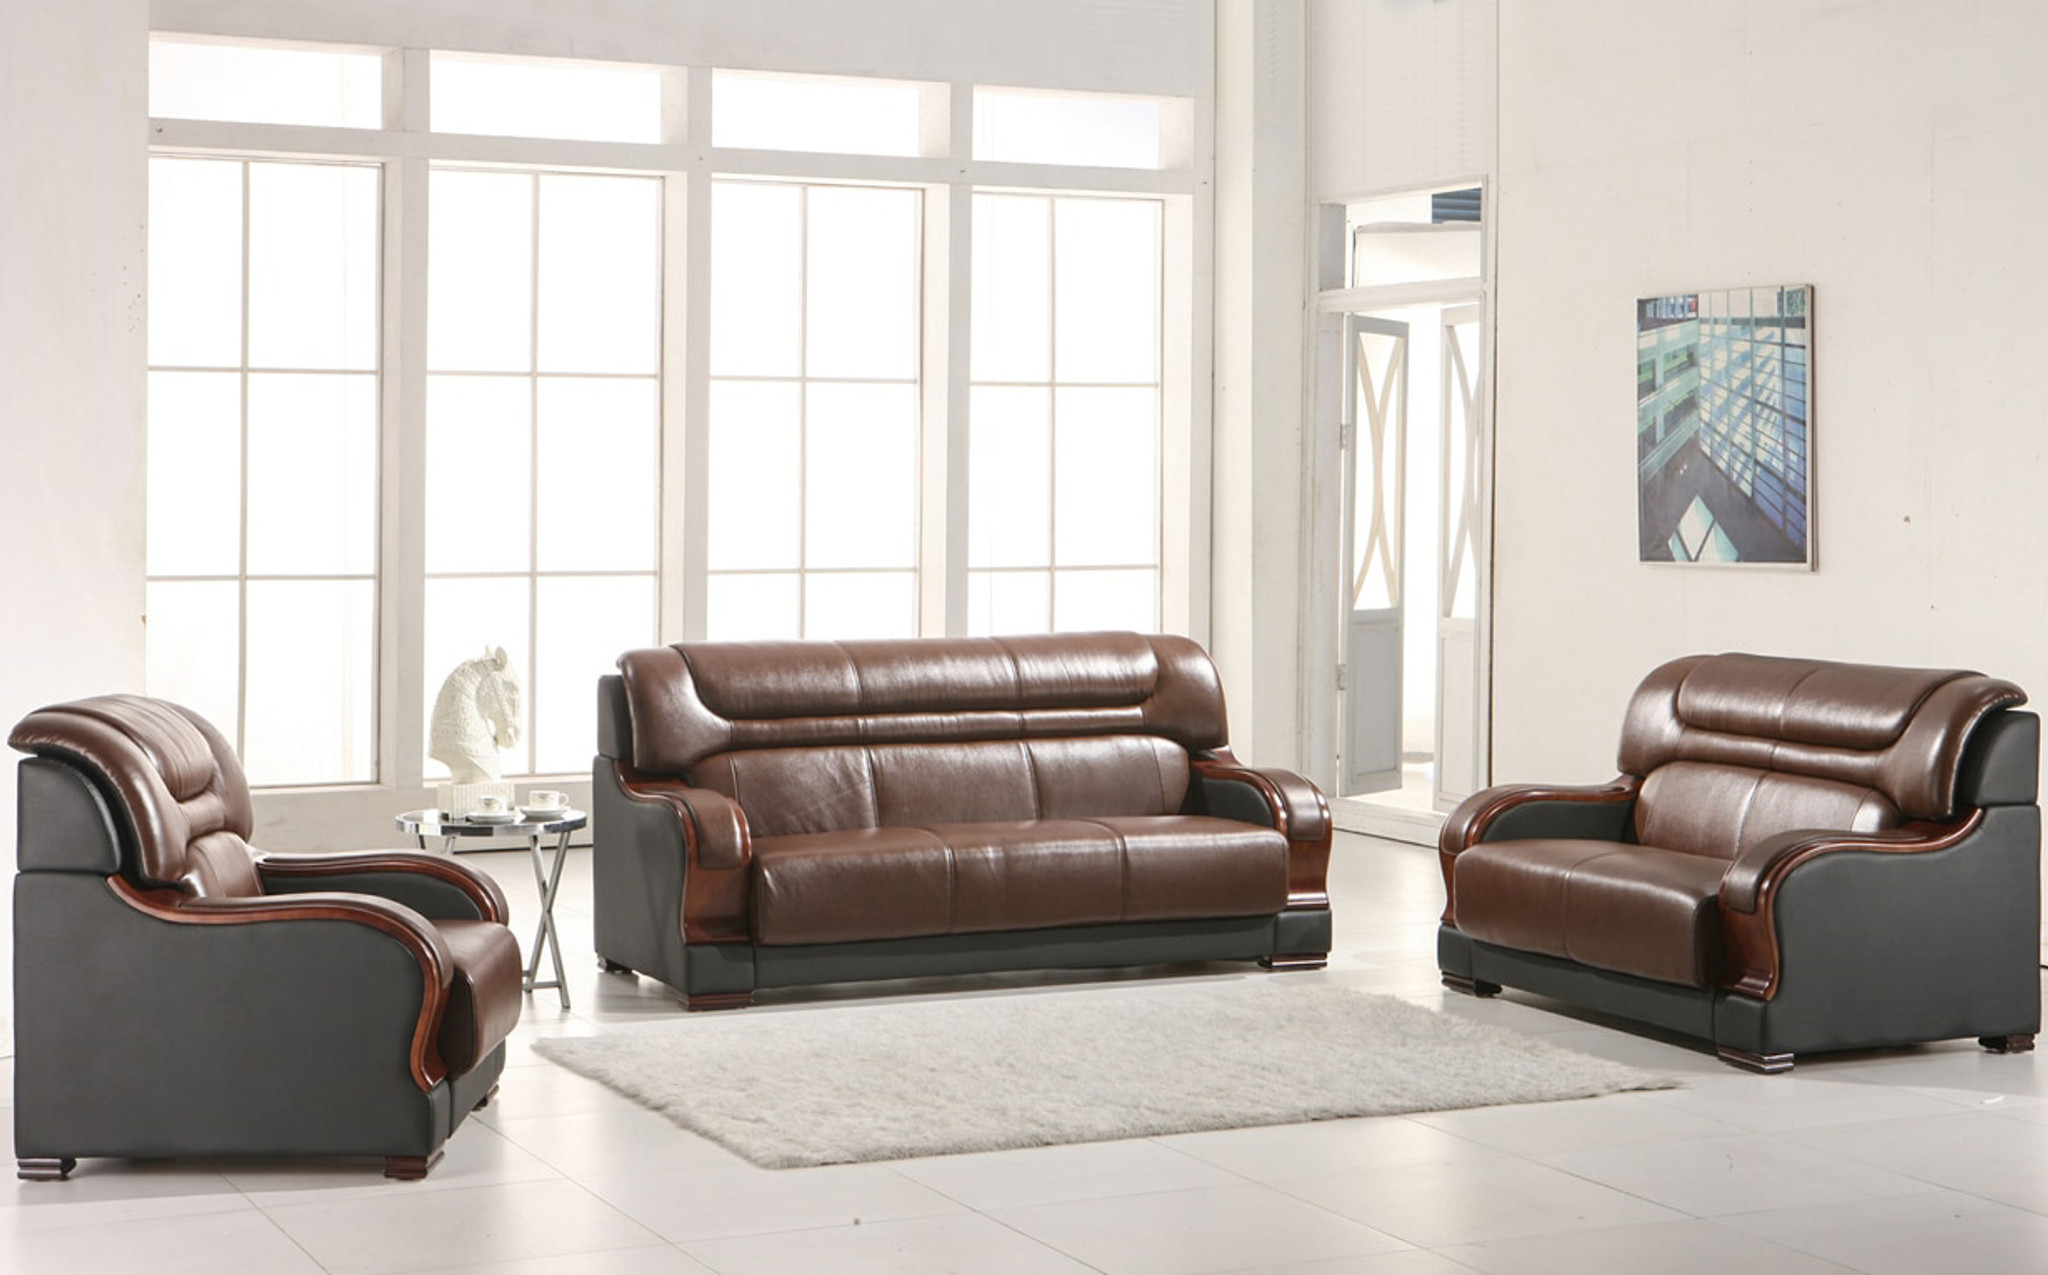 3 Pcs Brown & Black Leather and Wood Sofa Loveseat and single Chair